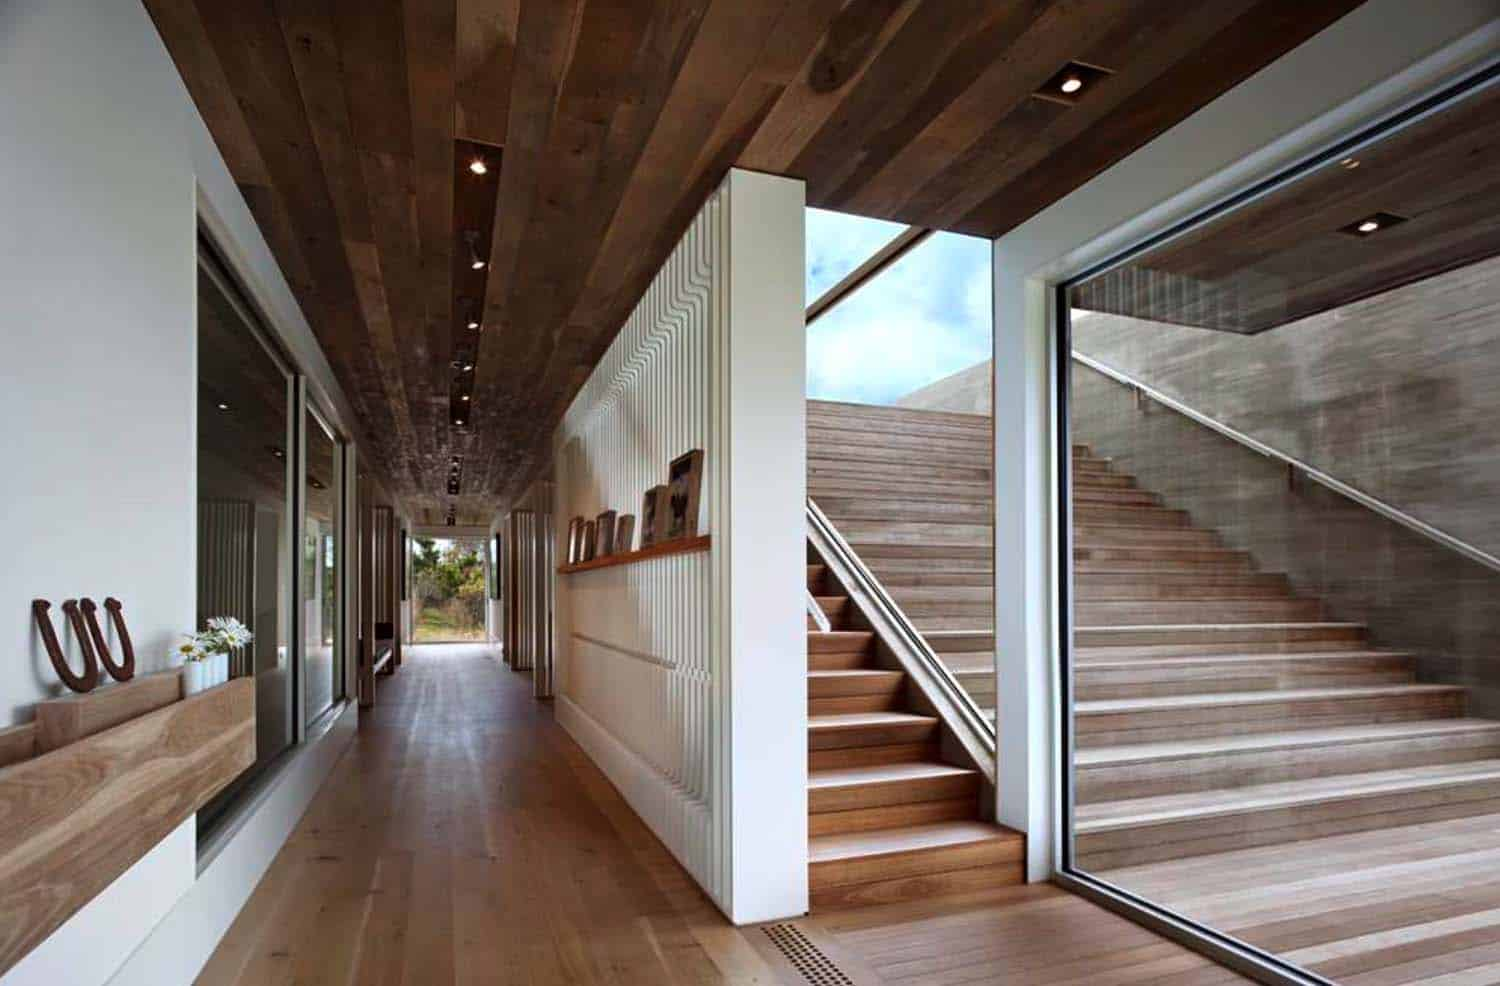 Contemporary Seaside Home-Bates Masi Architects-04-1 Kindesign